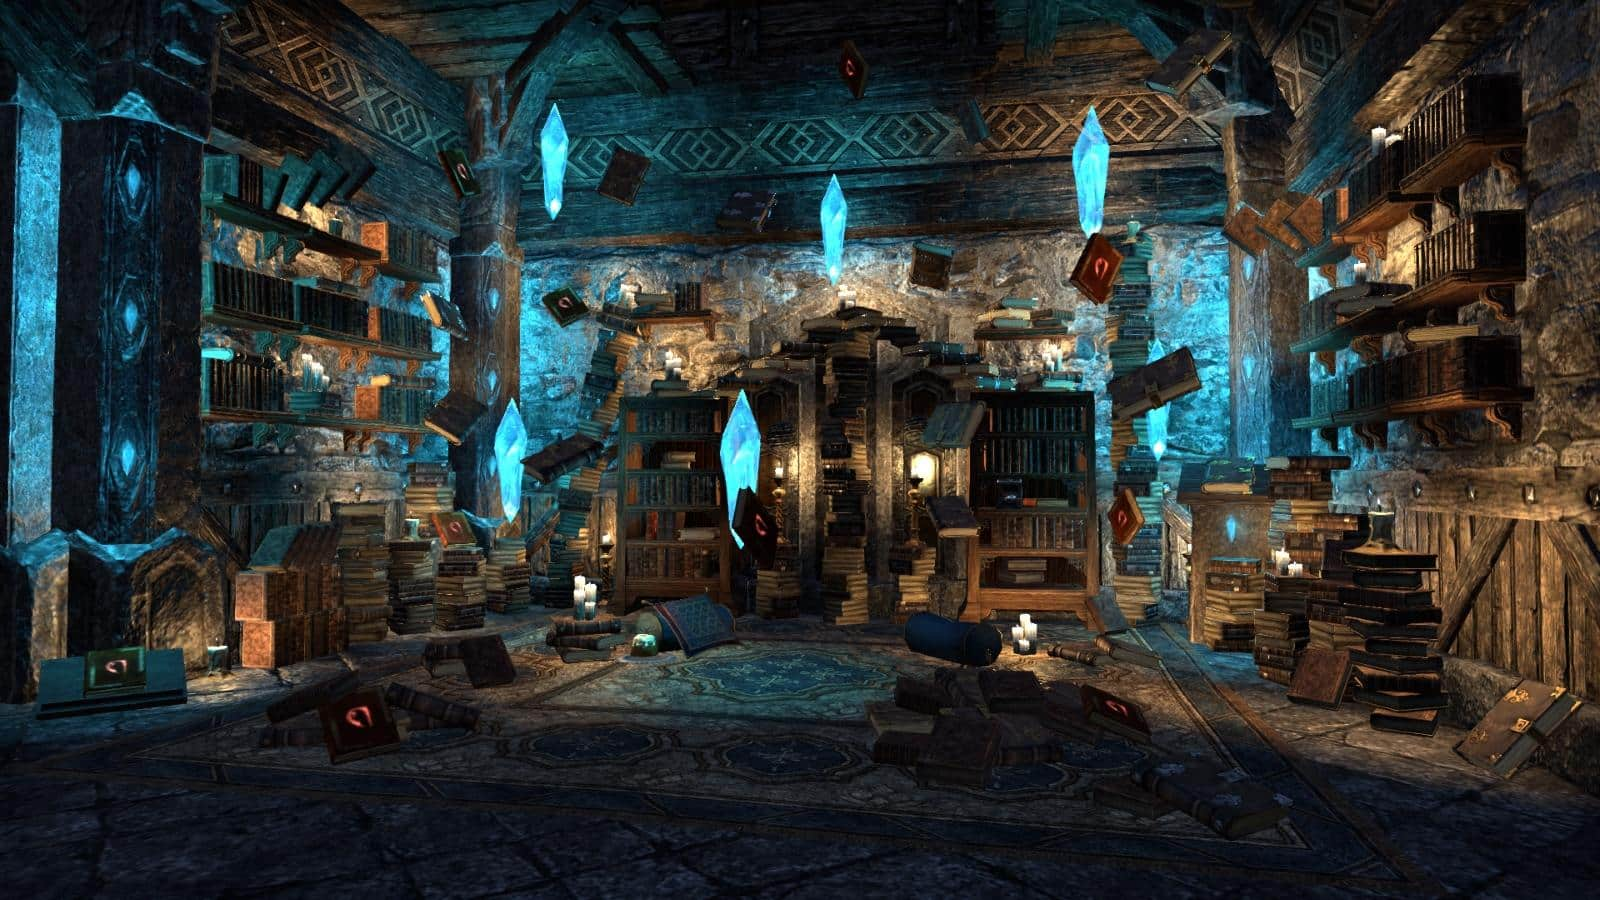 Announcing The Winners Of The ESO Home Decoration Contest